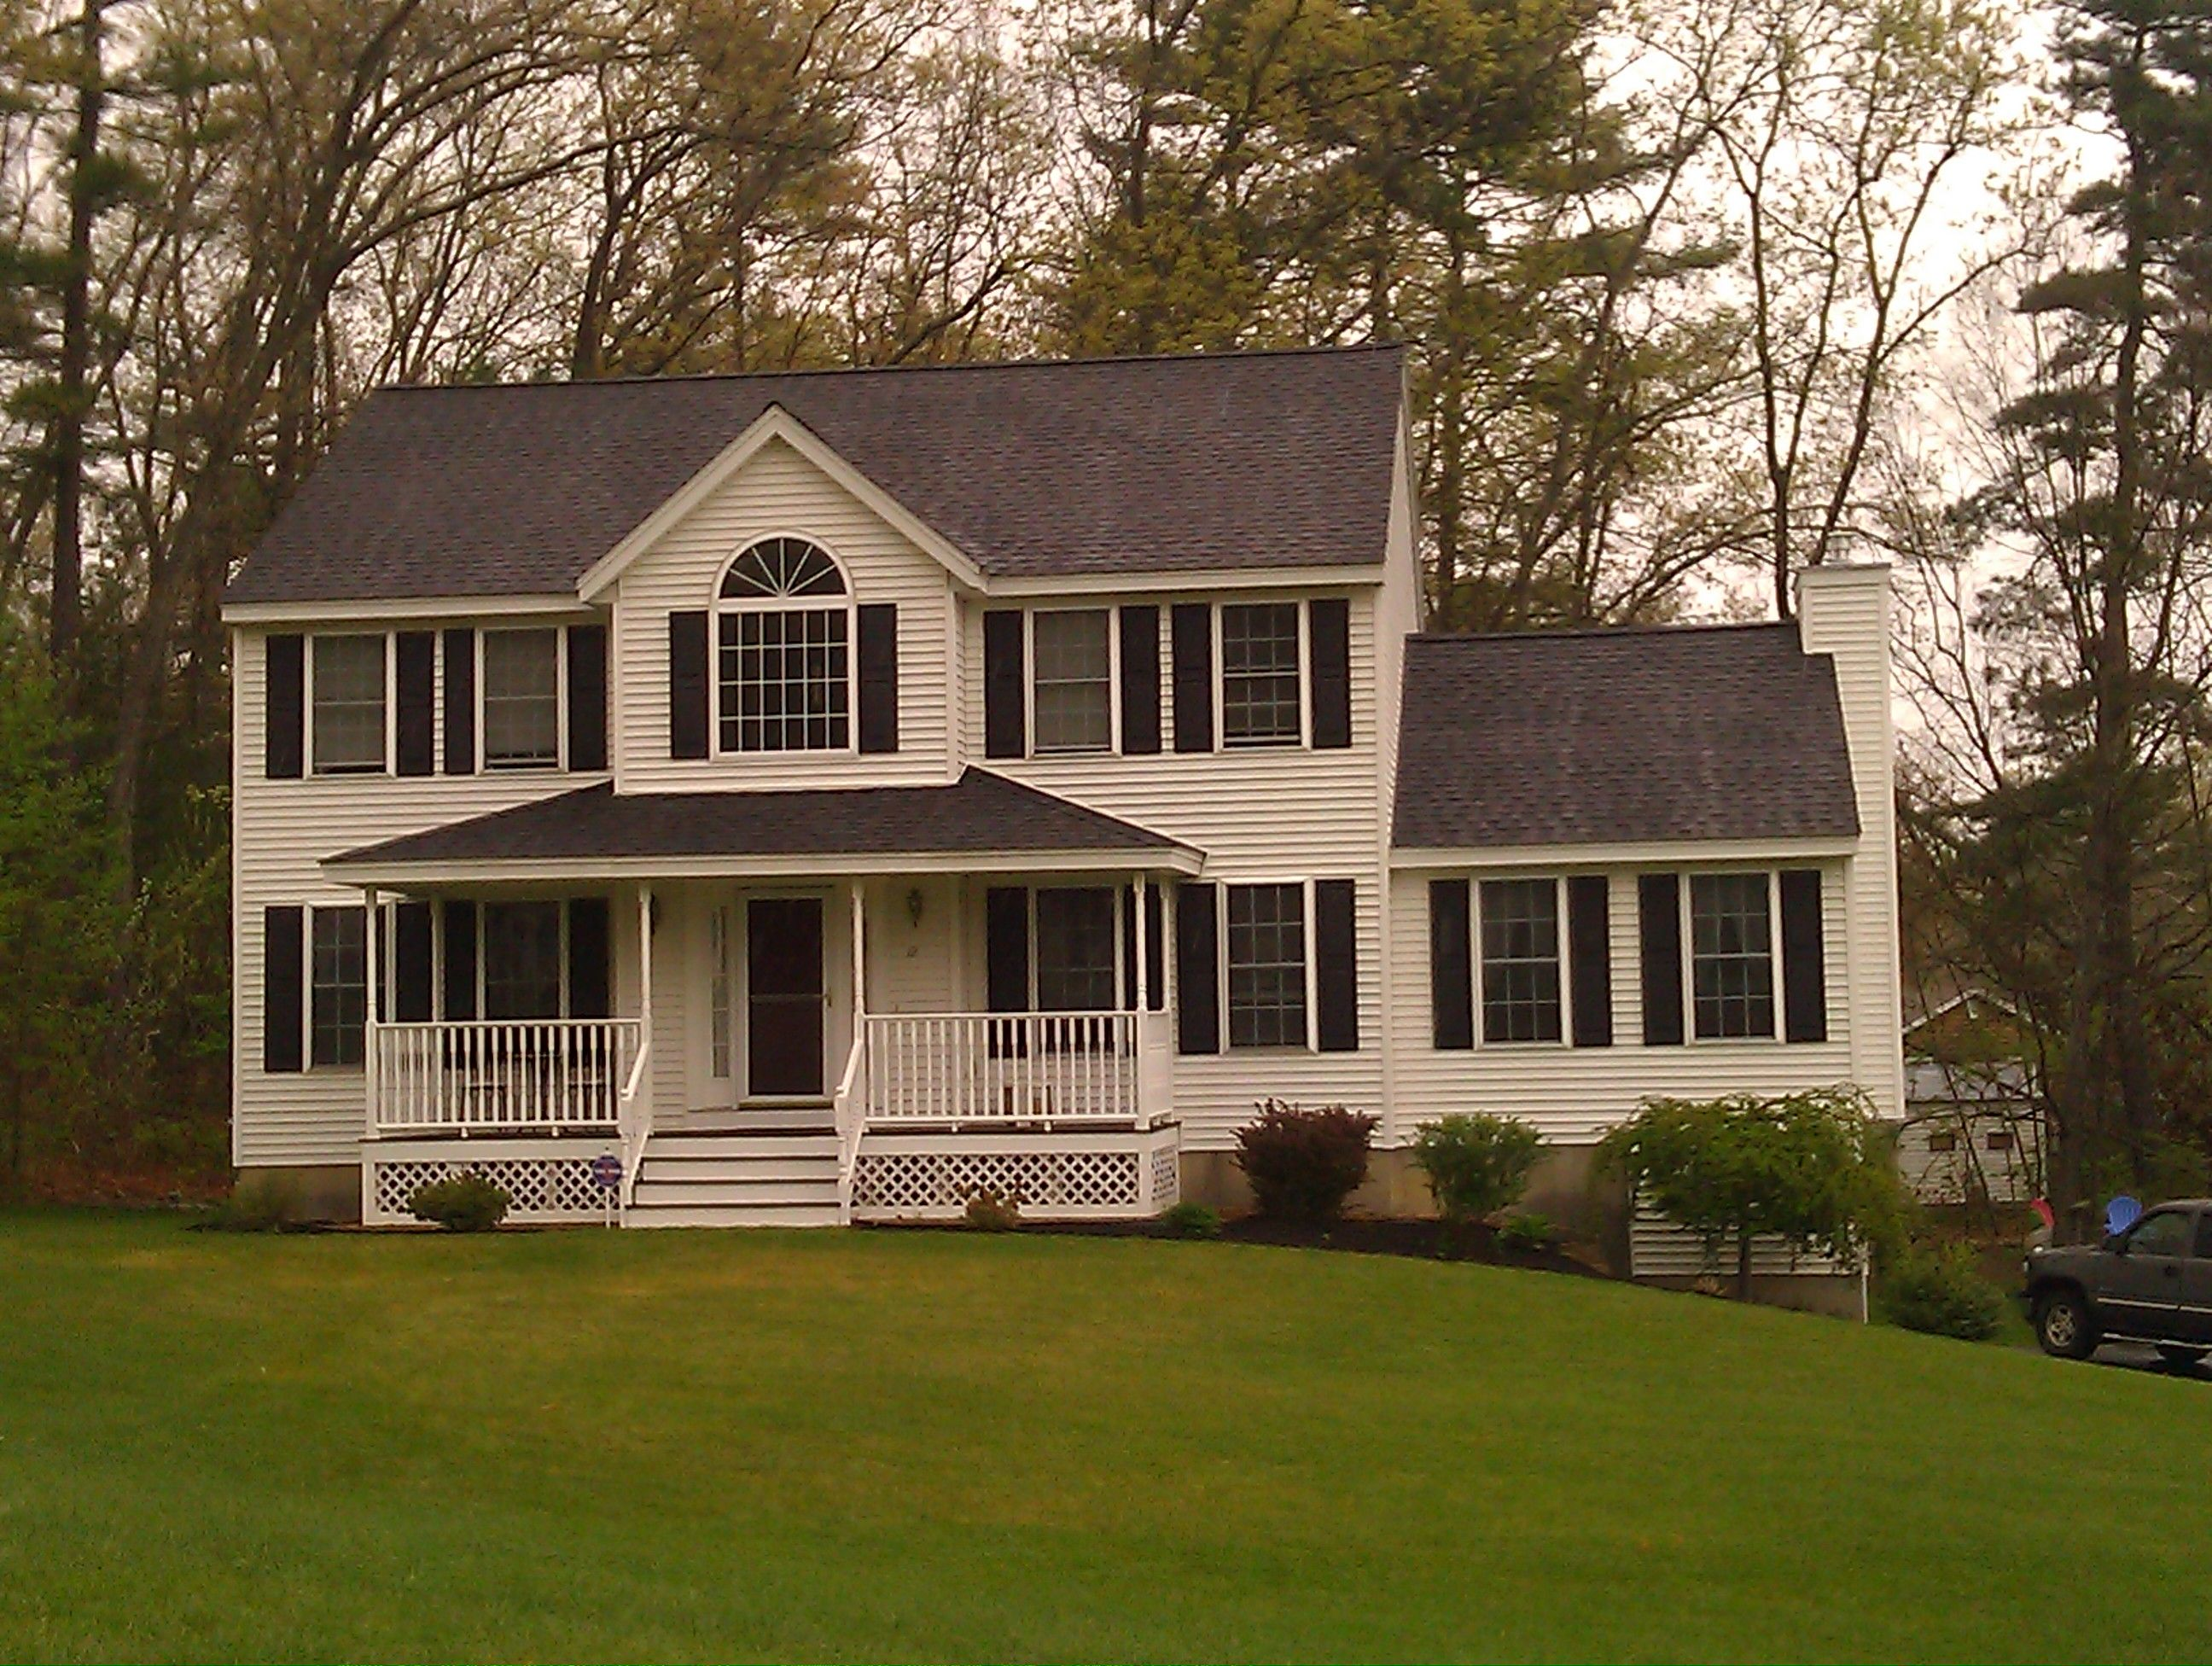 Windham Nh Homes Porch Architecture Colonial Farmhouse